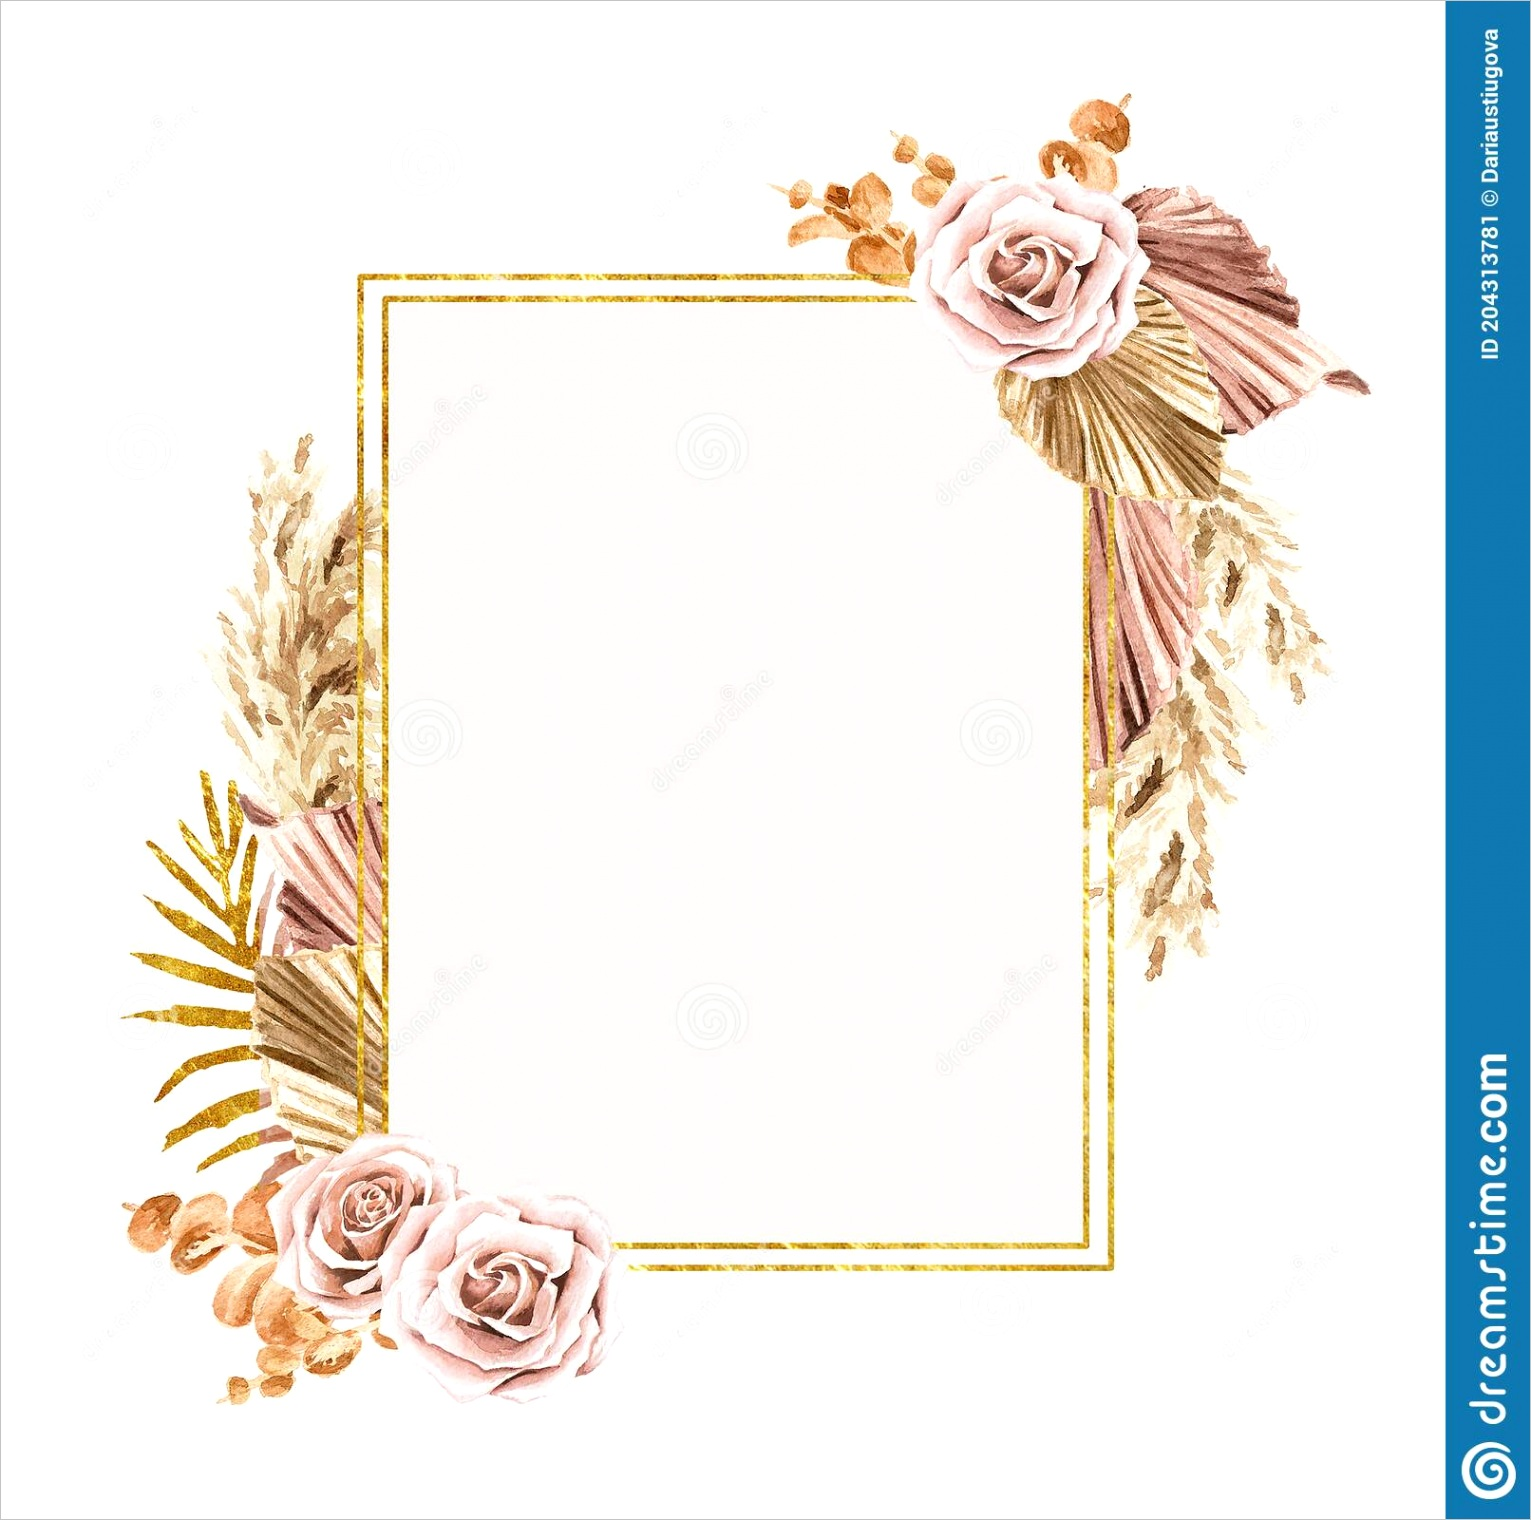 golden frame dried plants wedding invitation save date thank you brochure invite template background watercolor image